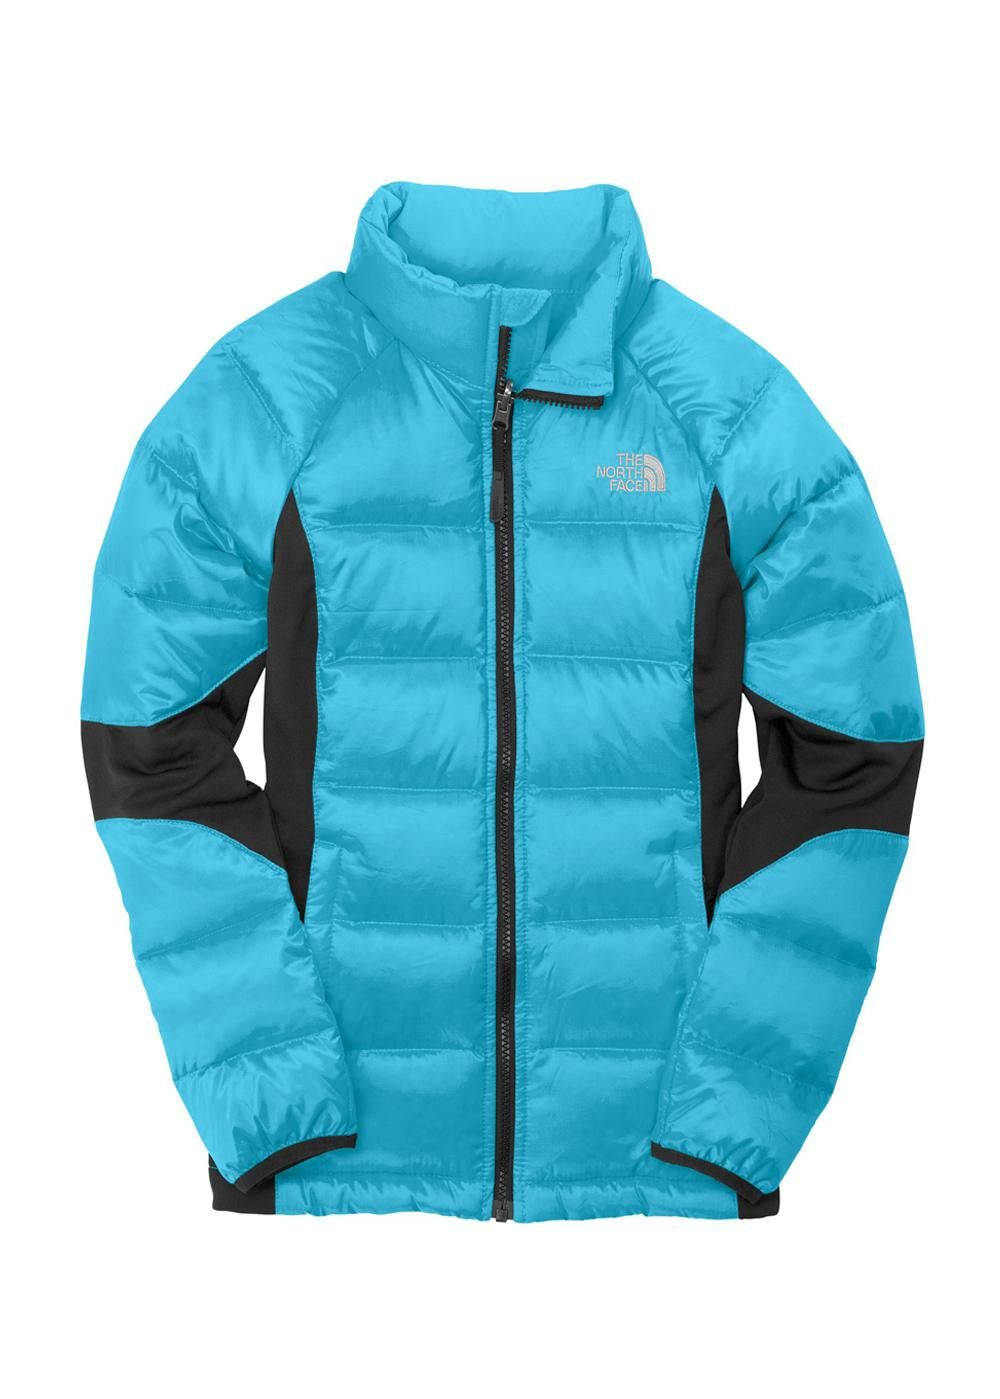 93207599f The North Face Girls Lil Crympt Jacket  129.95